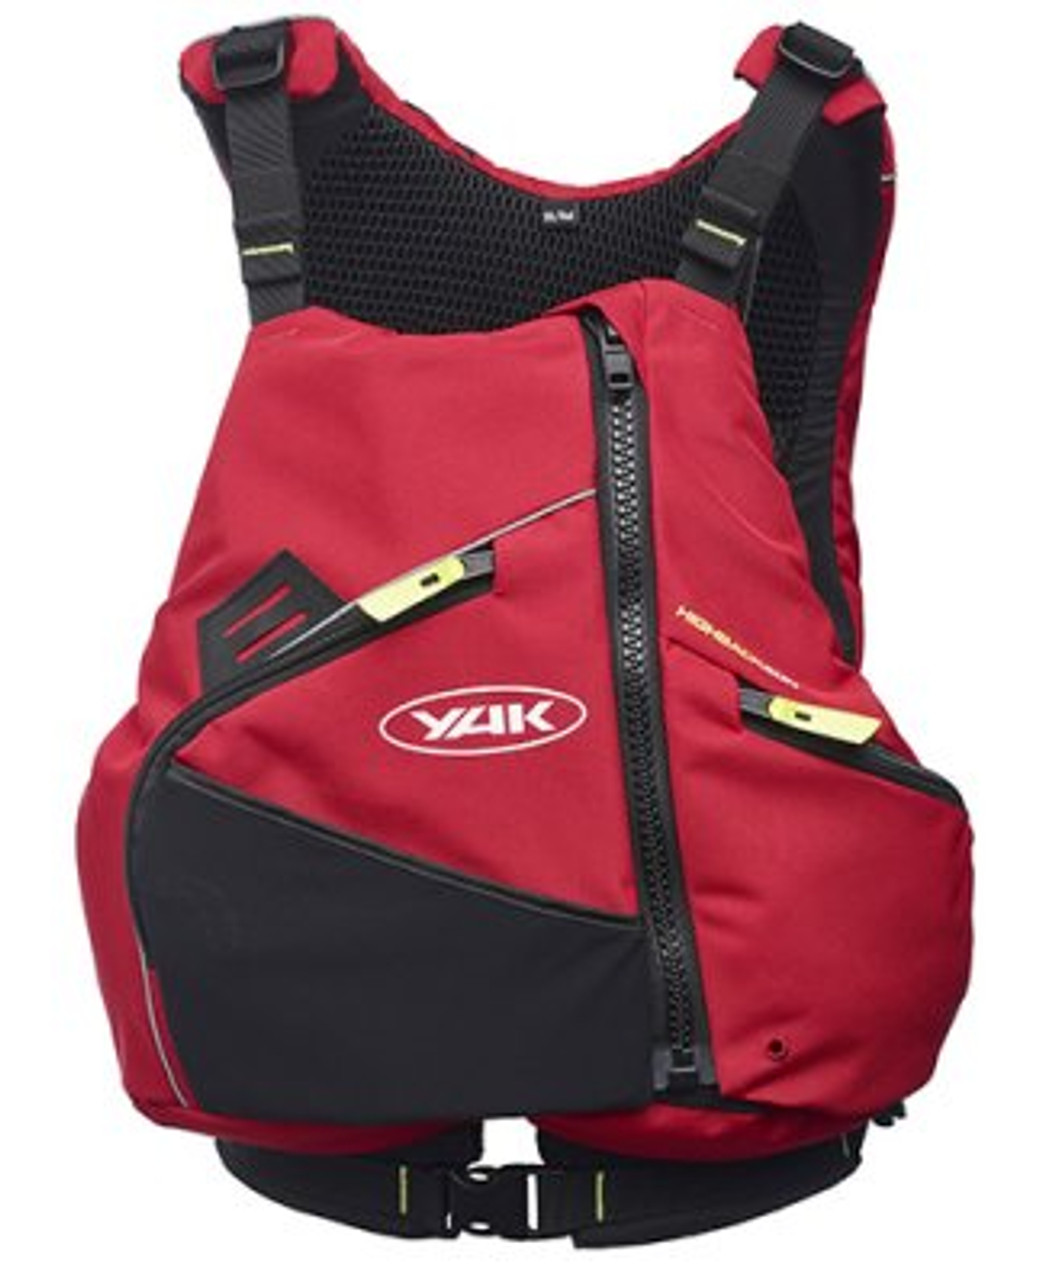 YAK High BackPFD in Red